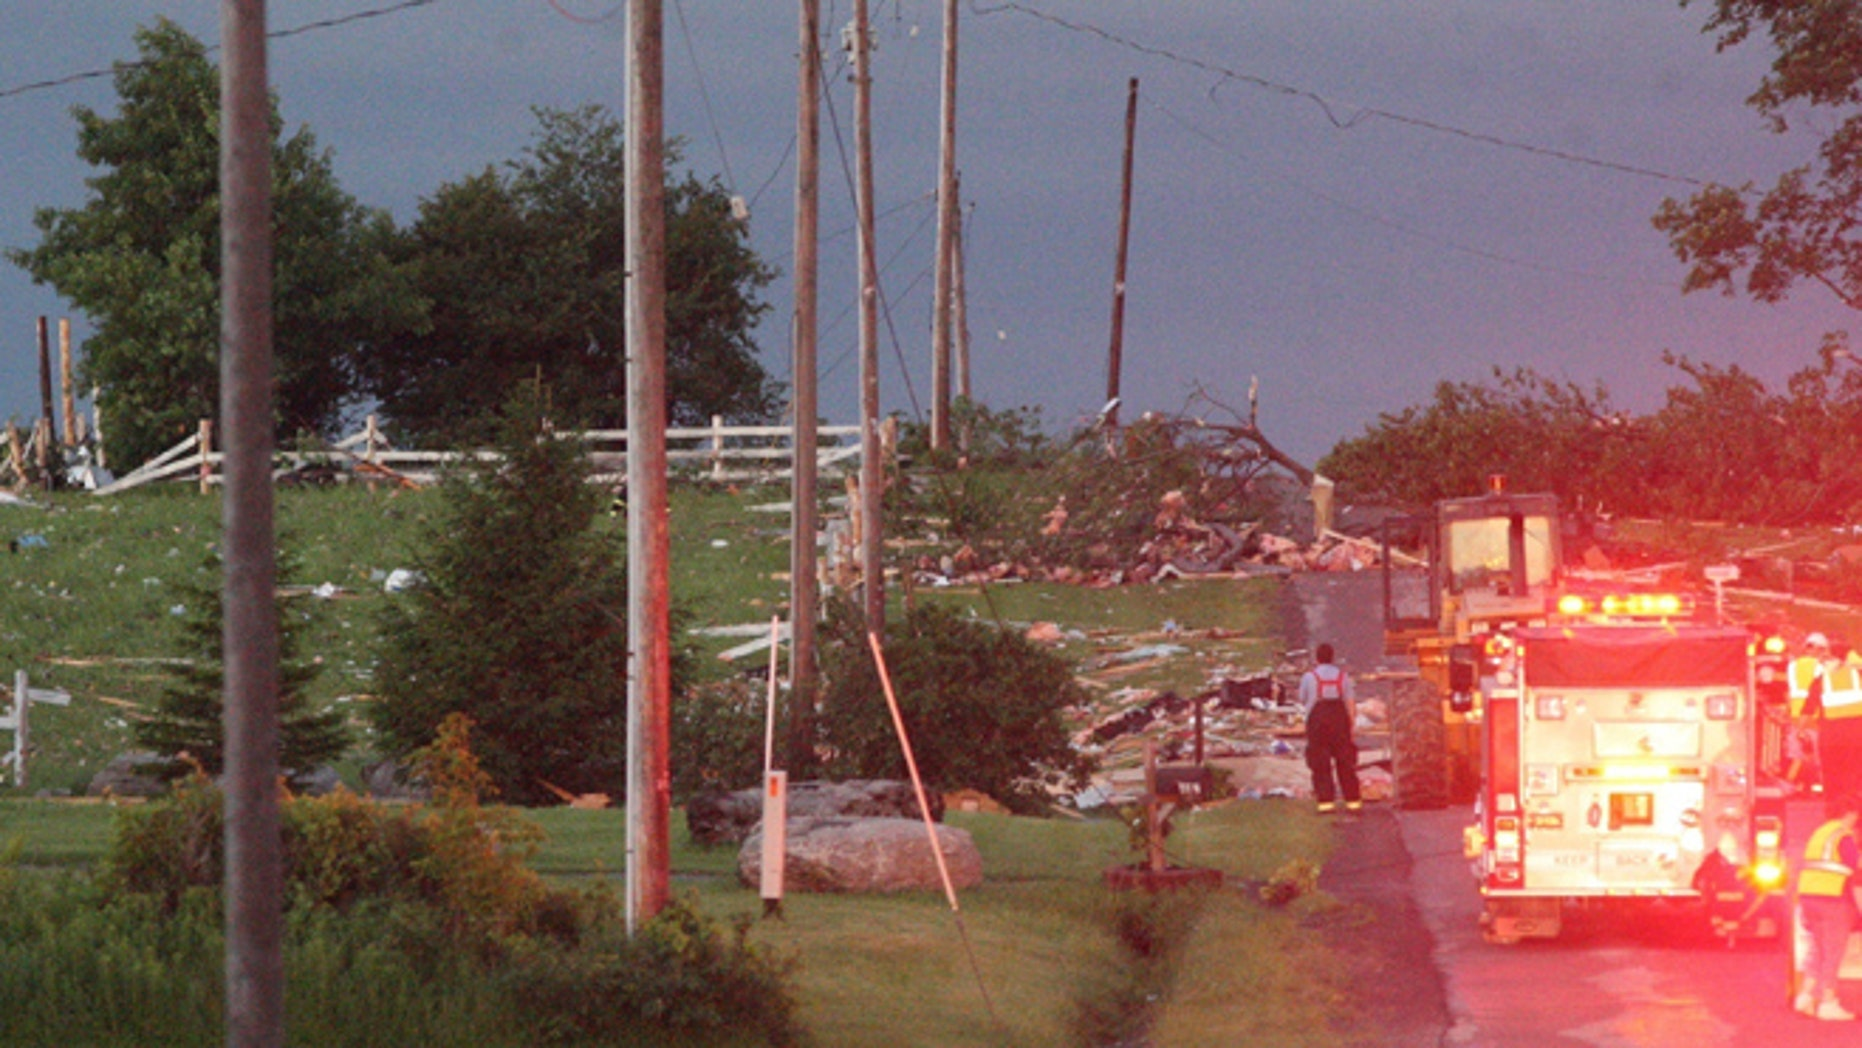 July 8: Debris is visible at Goff Road in Smithfield, N.Y., following a severe storm.